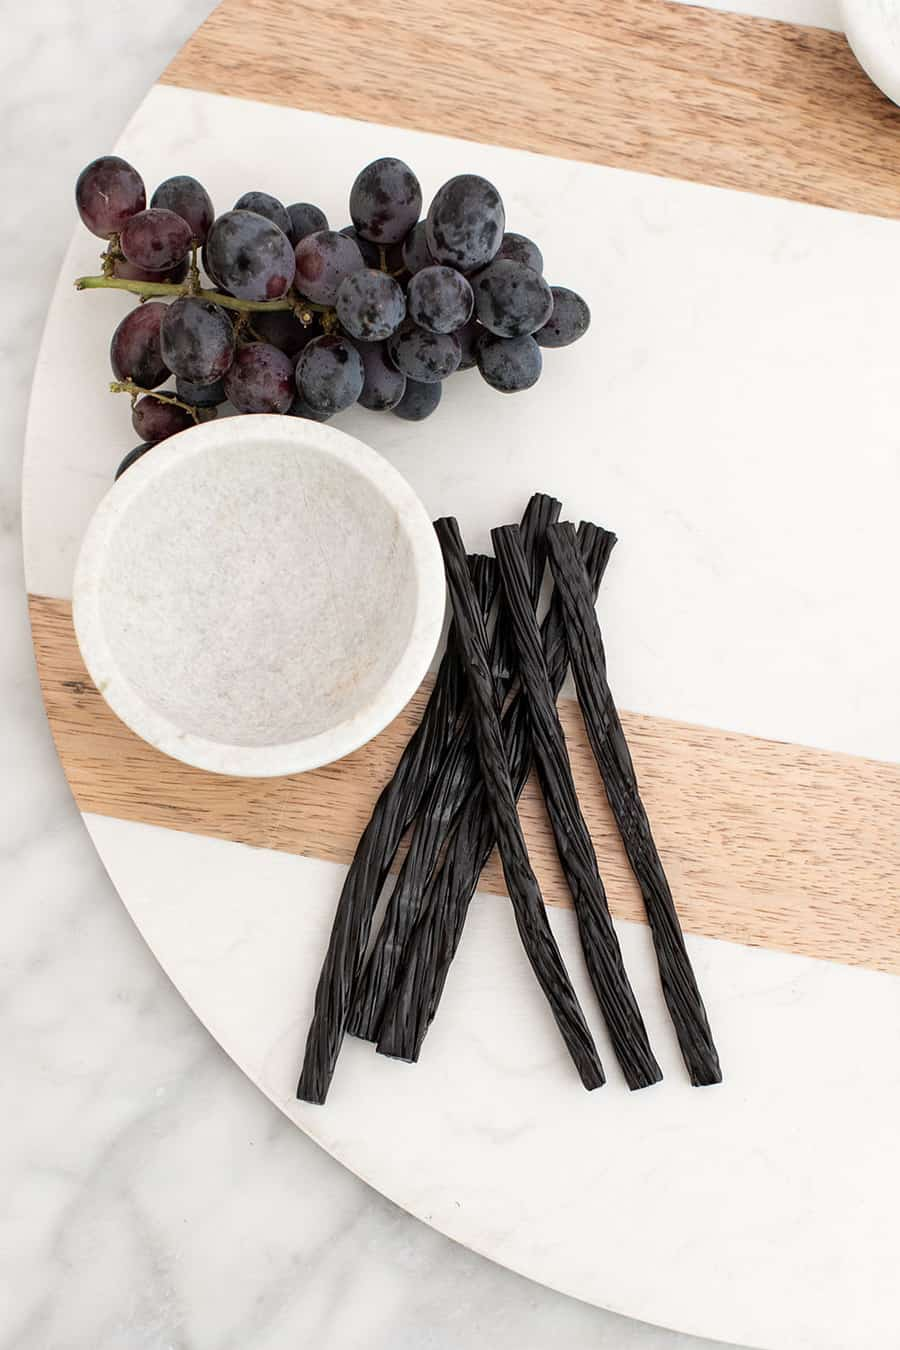 Black licorice on a platter to make a Halloween dessert